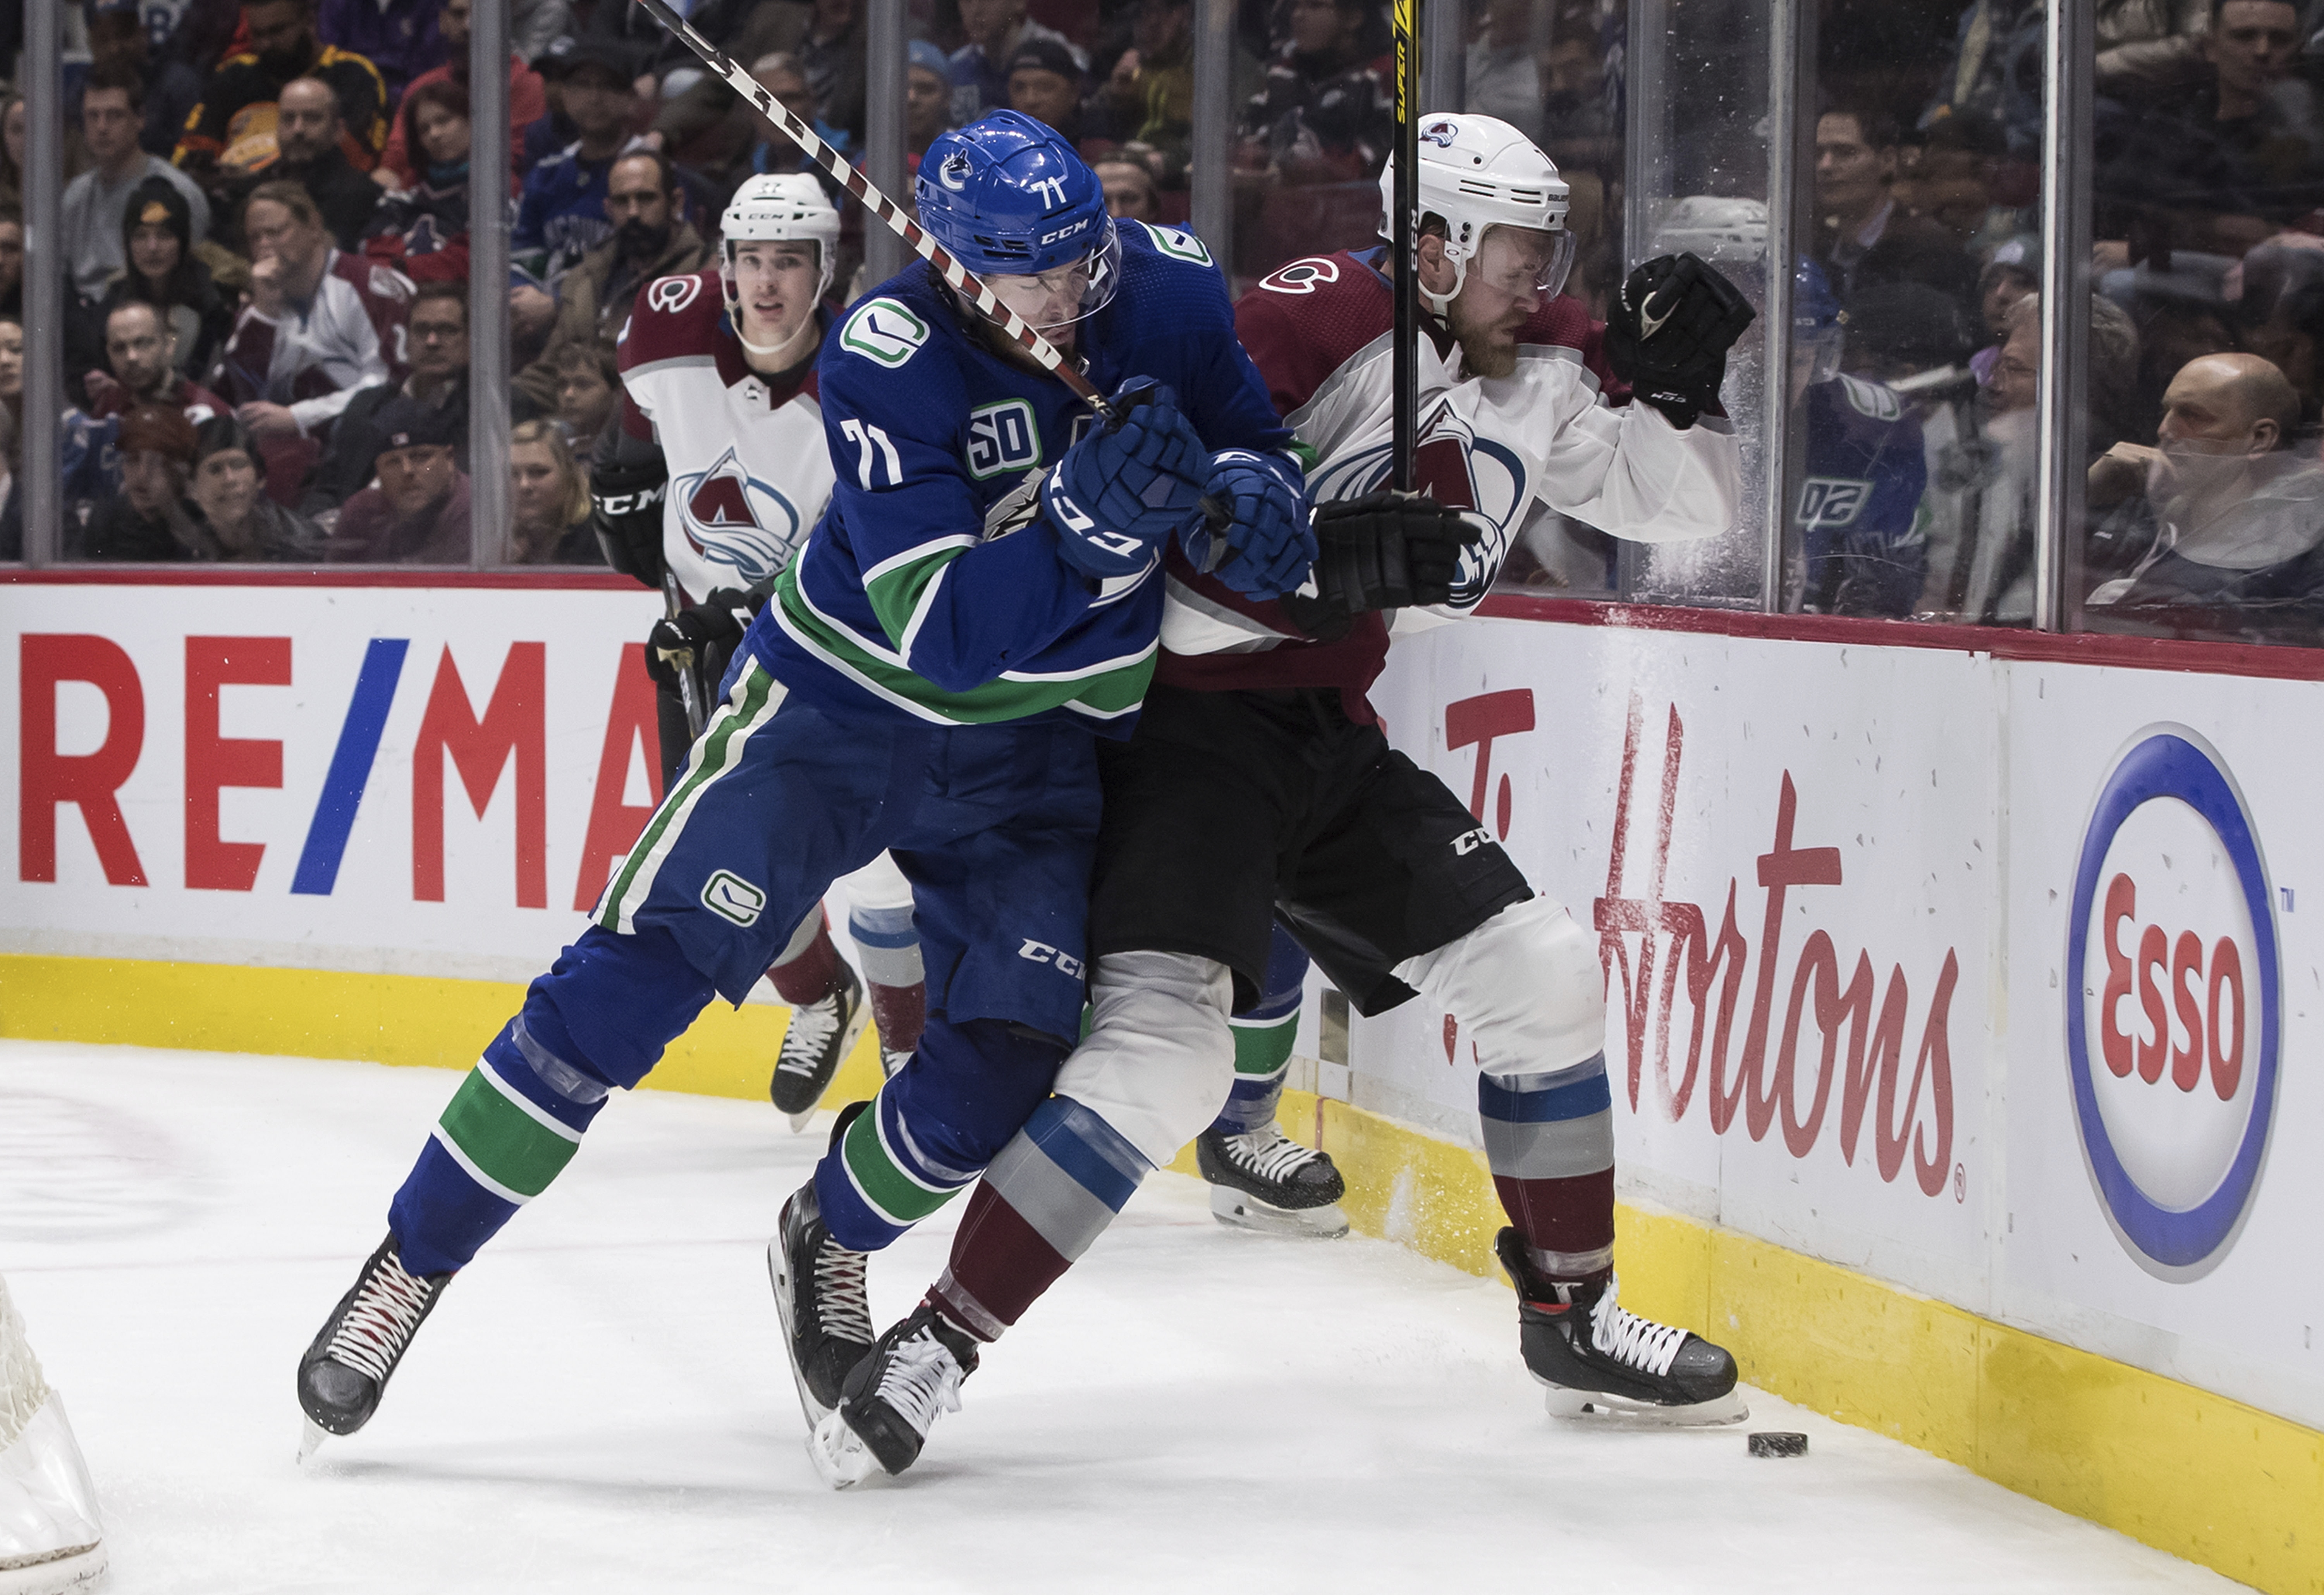 MacEwen scores 2, Canucks double up Avalanche 6-3